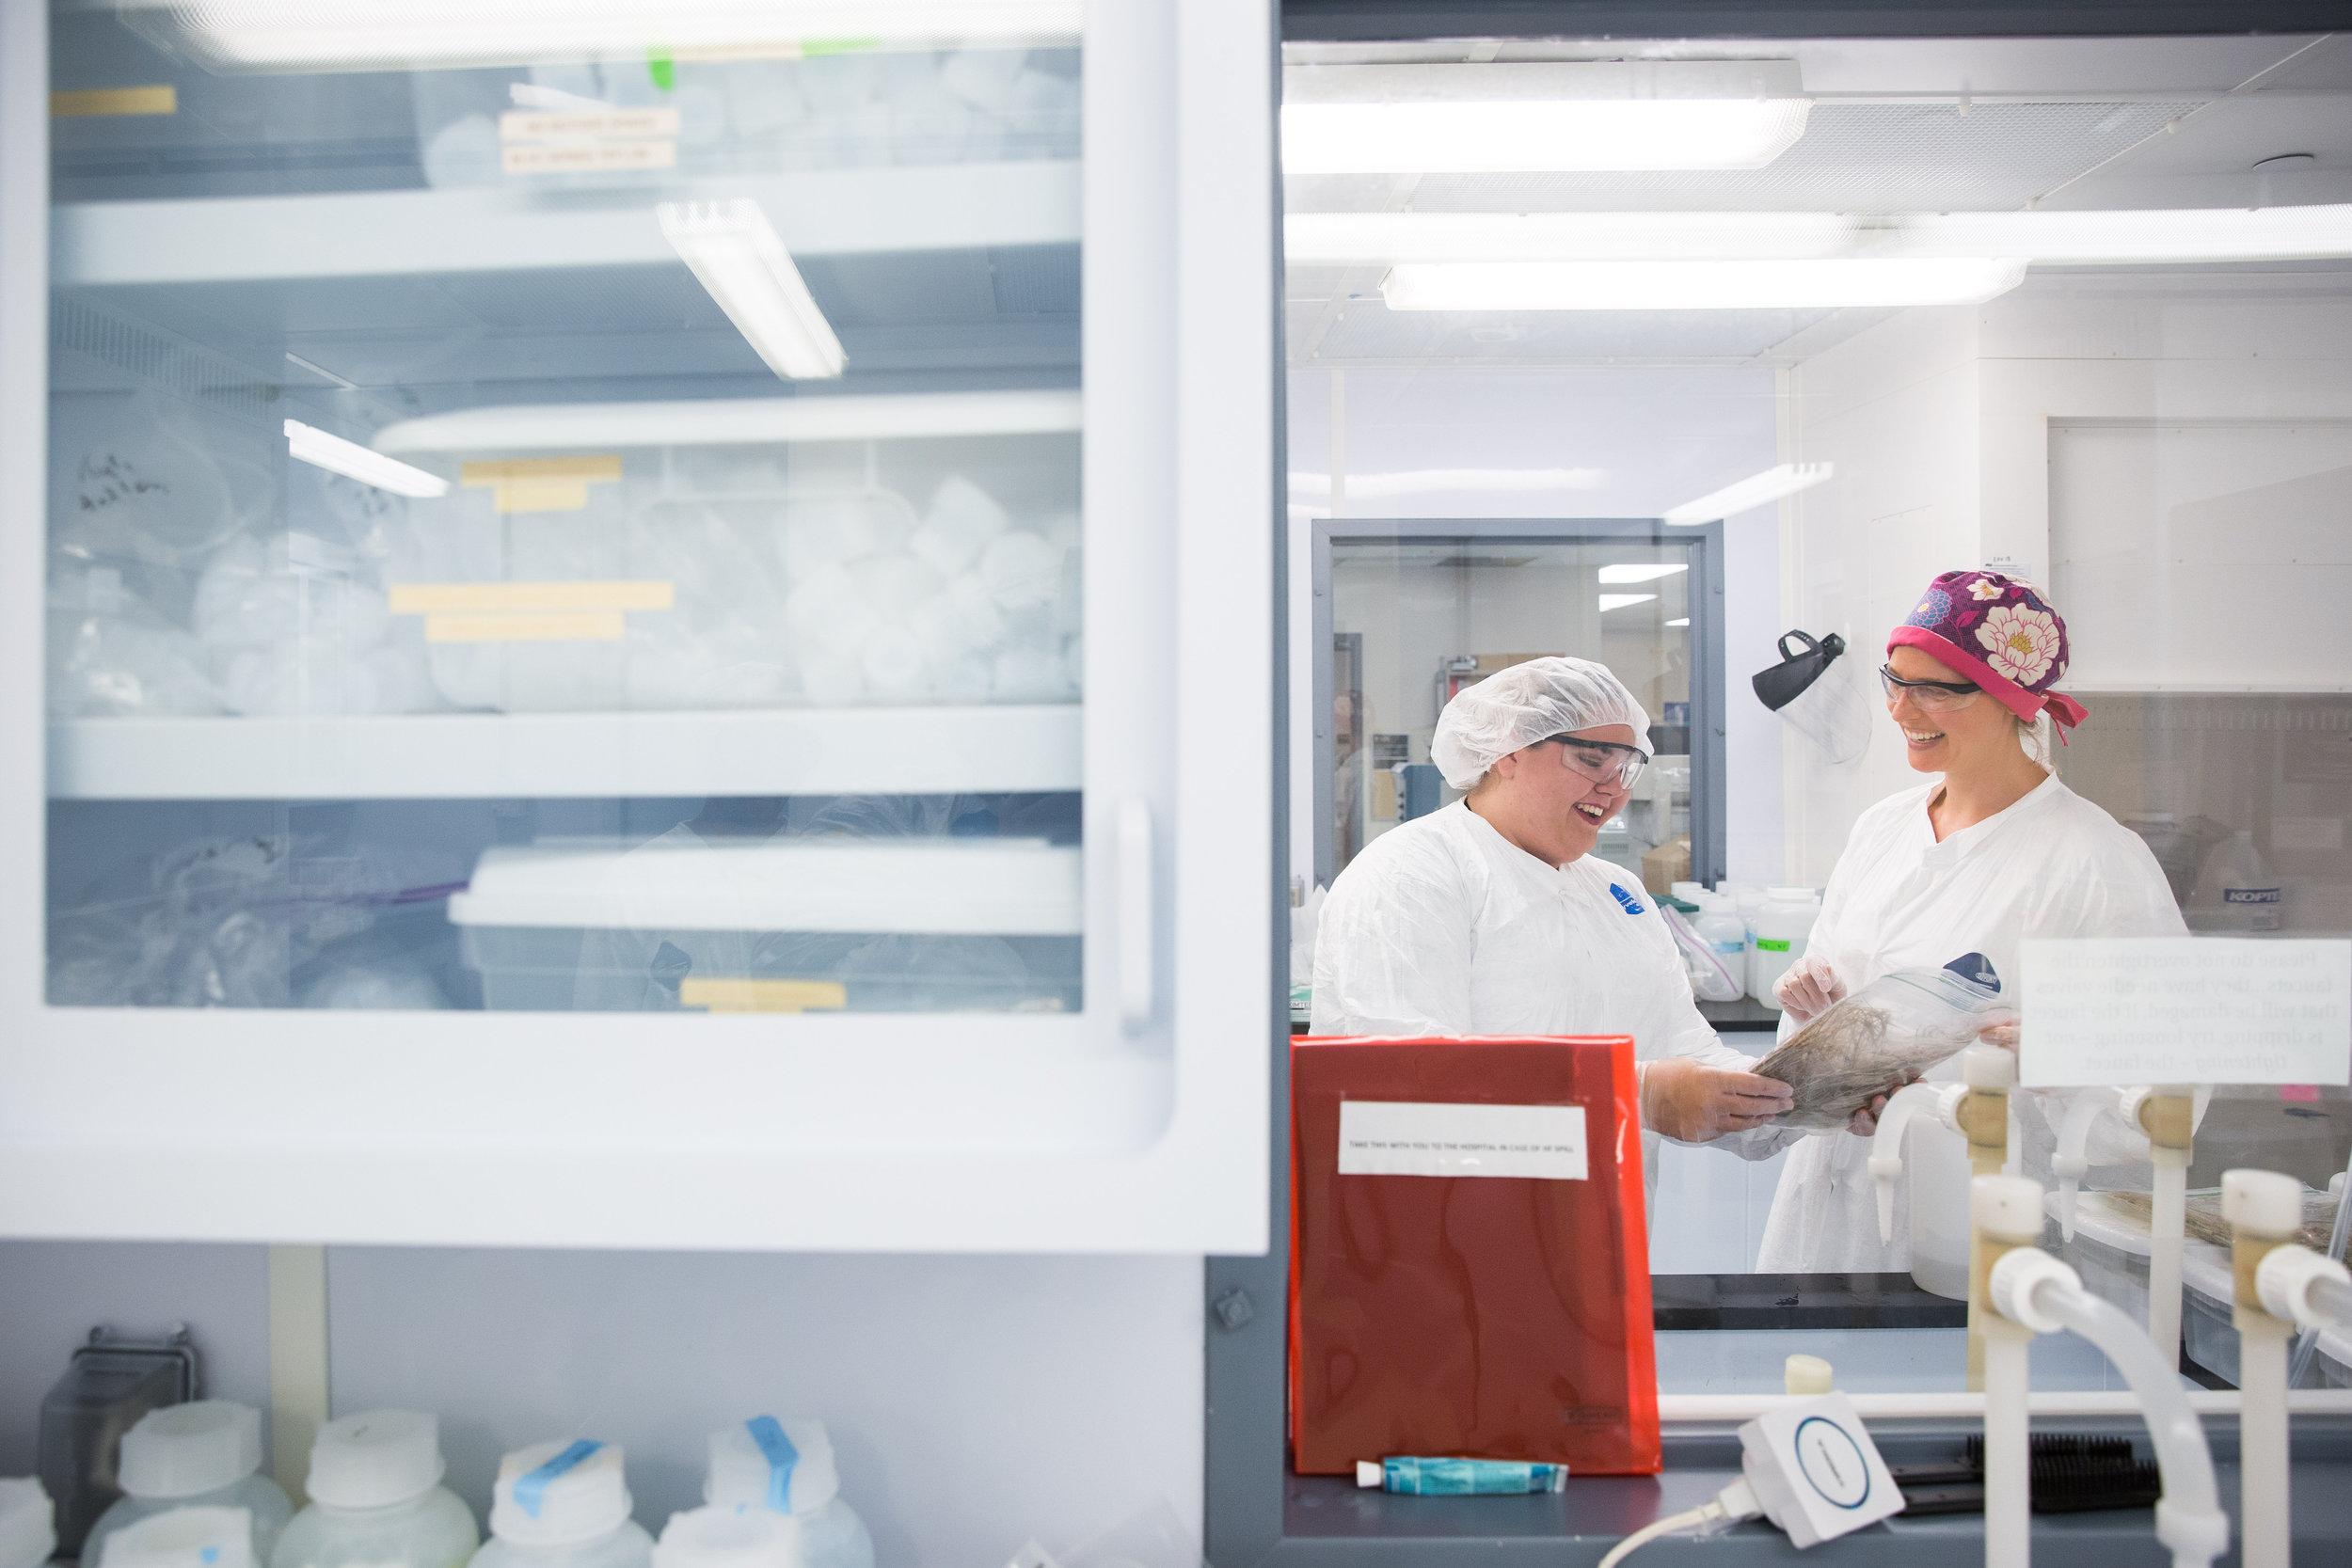 PhD student Alyssa Sherry and Alice Letcher assess samples in the KFLEB clean lab